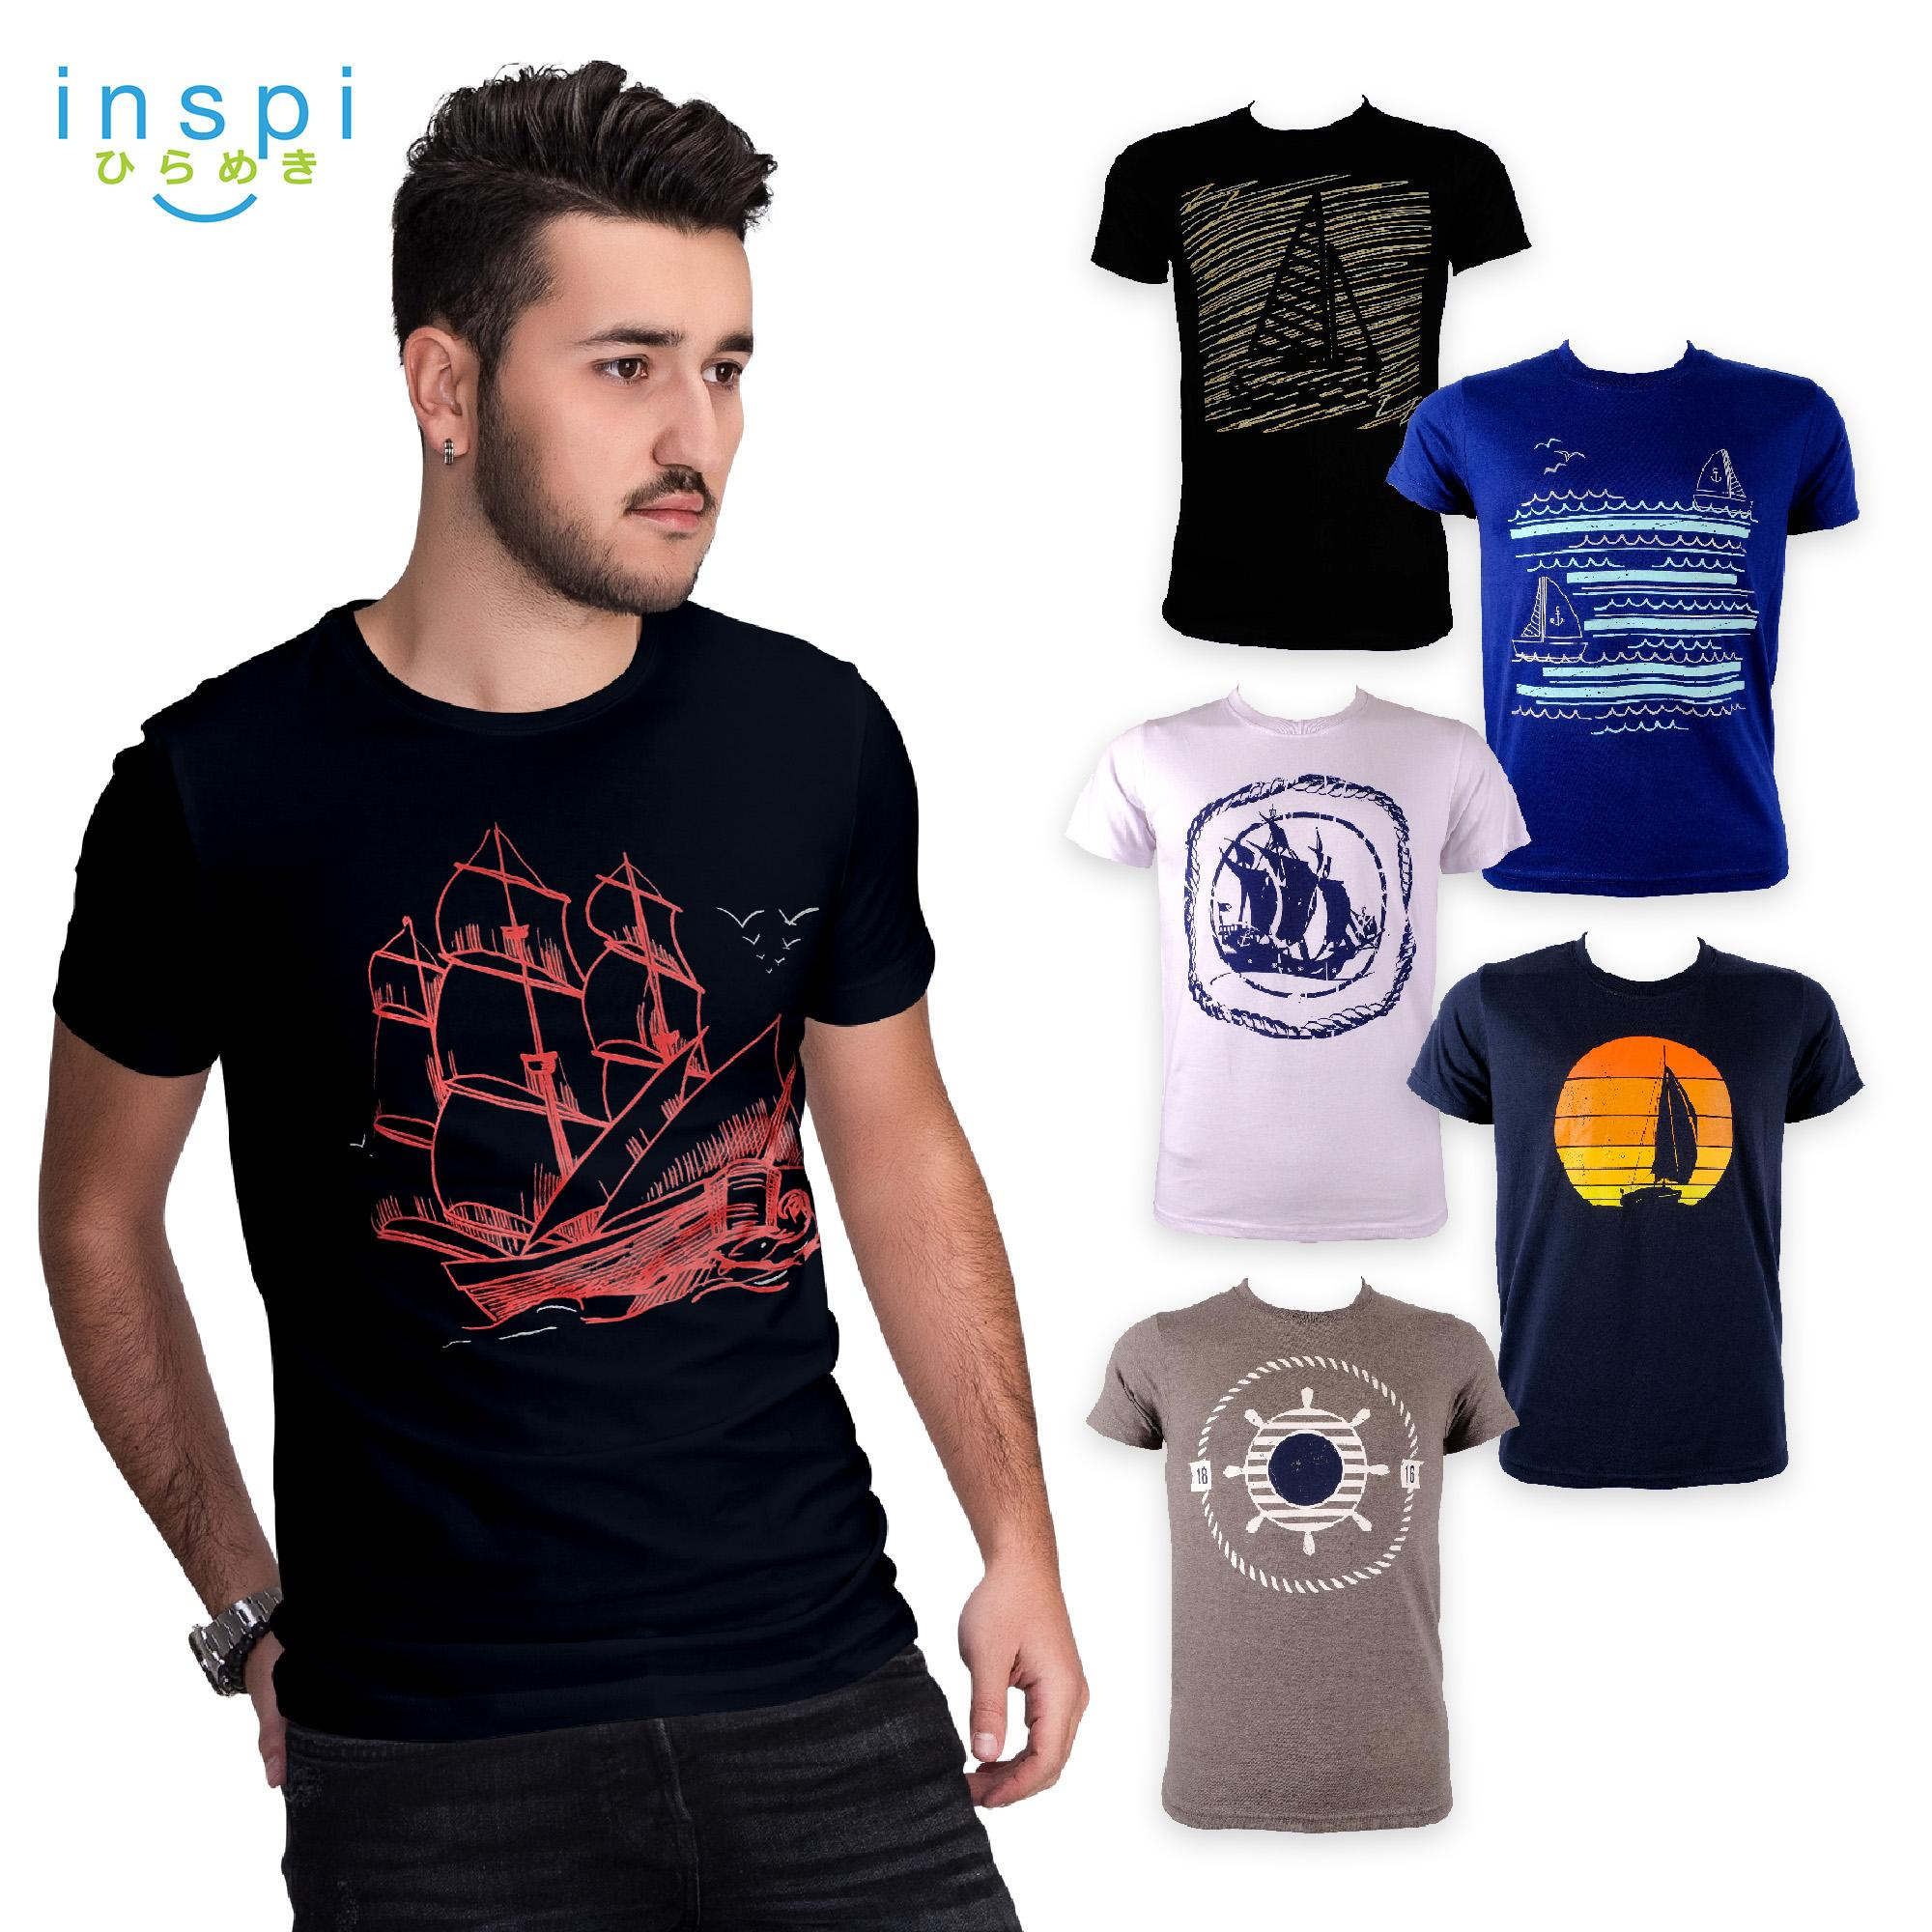 115edf514f7 INSPI Tees Sailing Collection tshirt printed graphic tee Mens t shirt shirts  for men tshirts sale